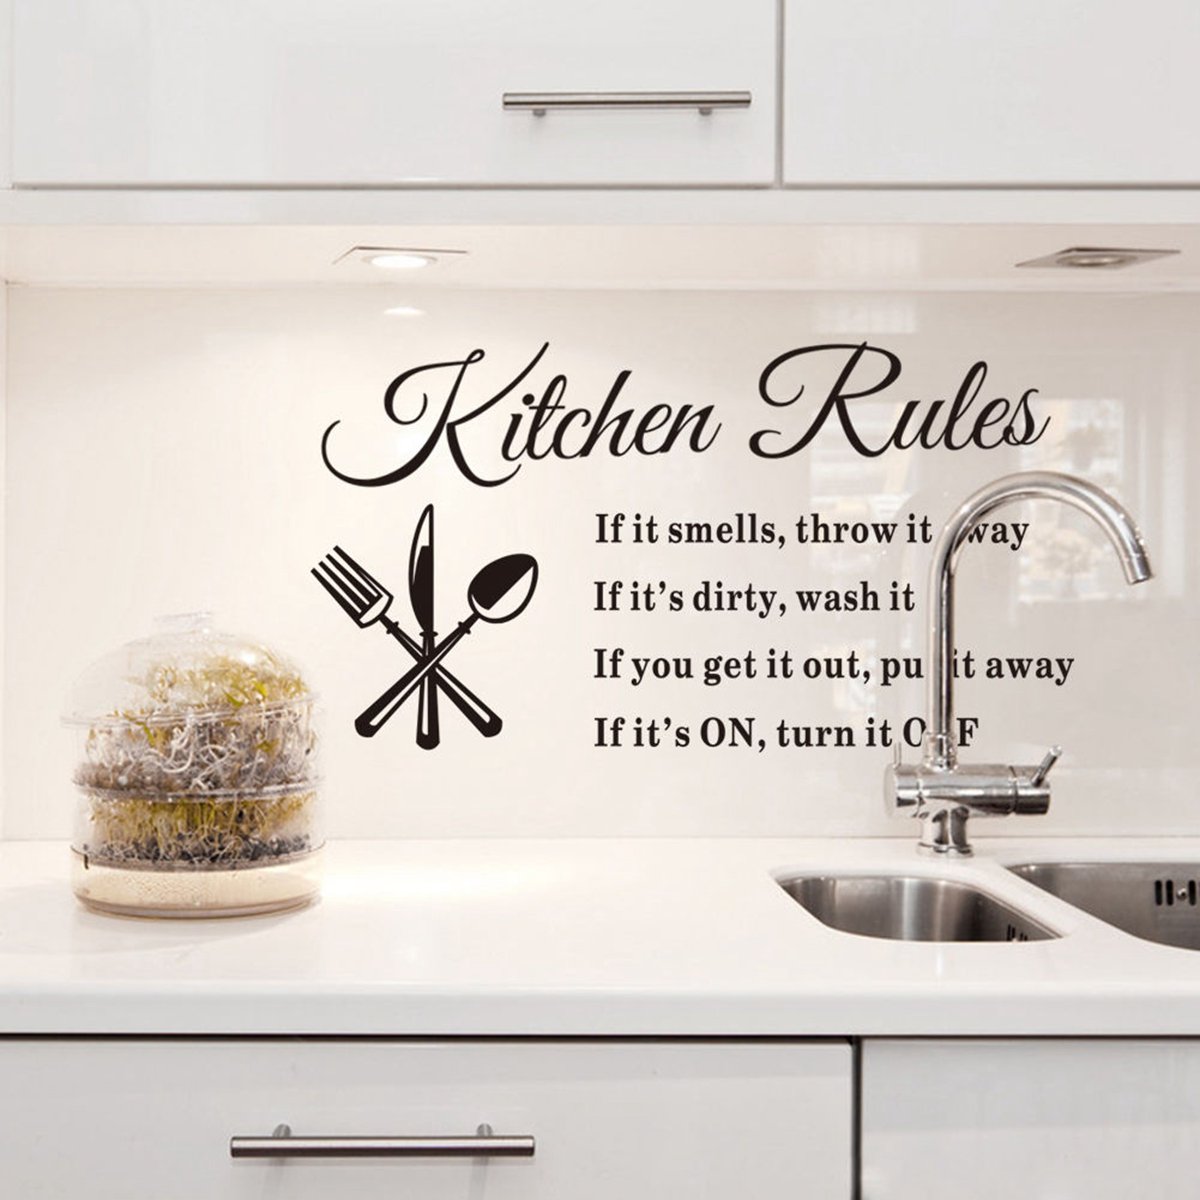 Jeteven removable kitchen rules words wall stickers decal home jeteven removable kitchen rules words wall stickers decal home decor2362x1299 walmart amipublicfo Choice Image